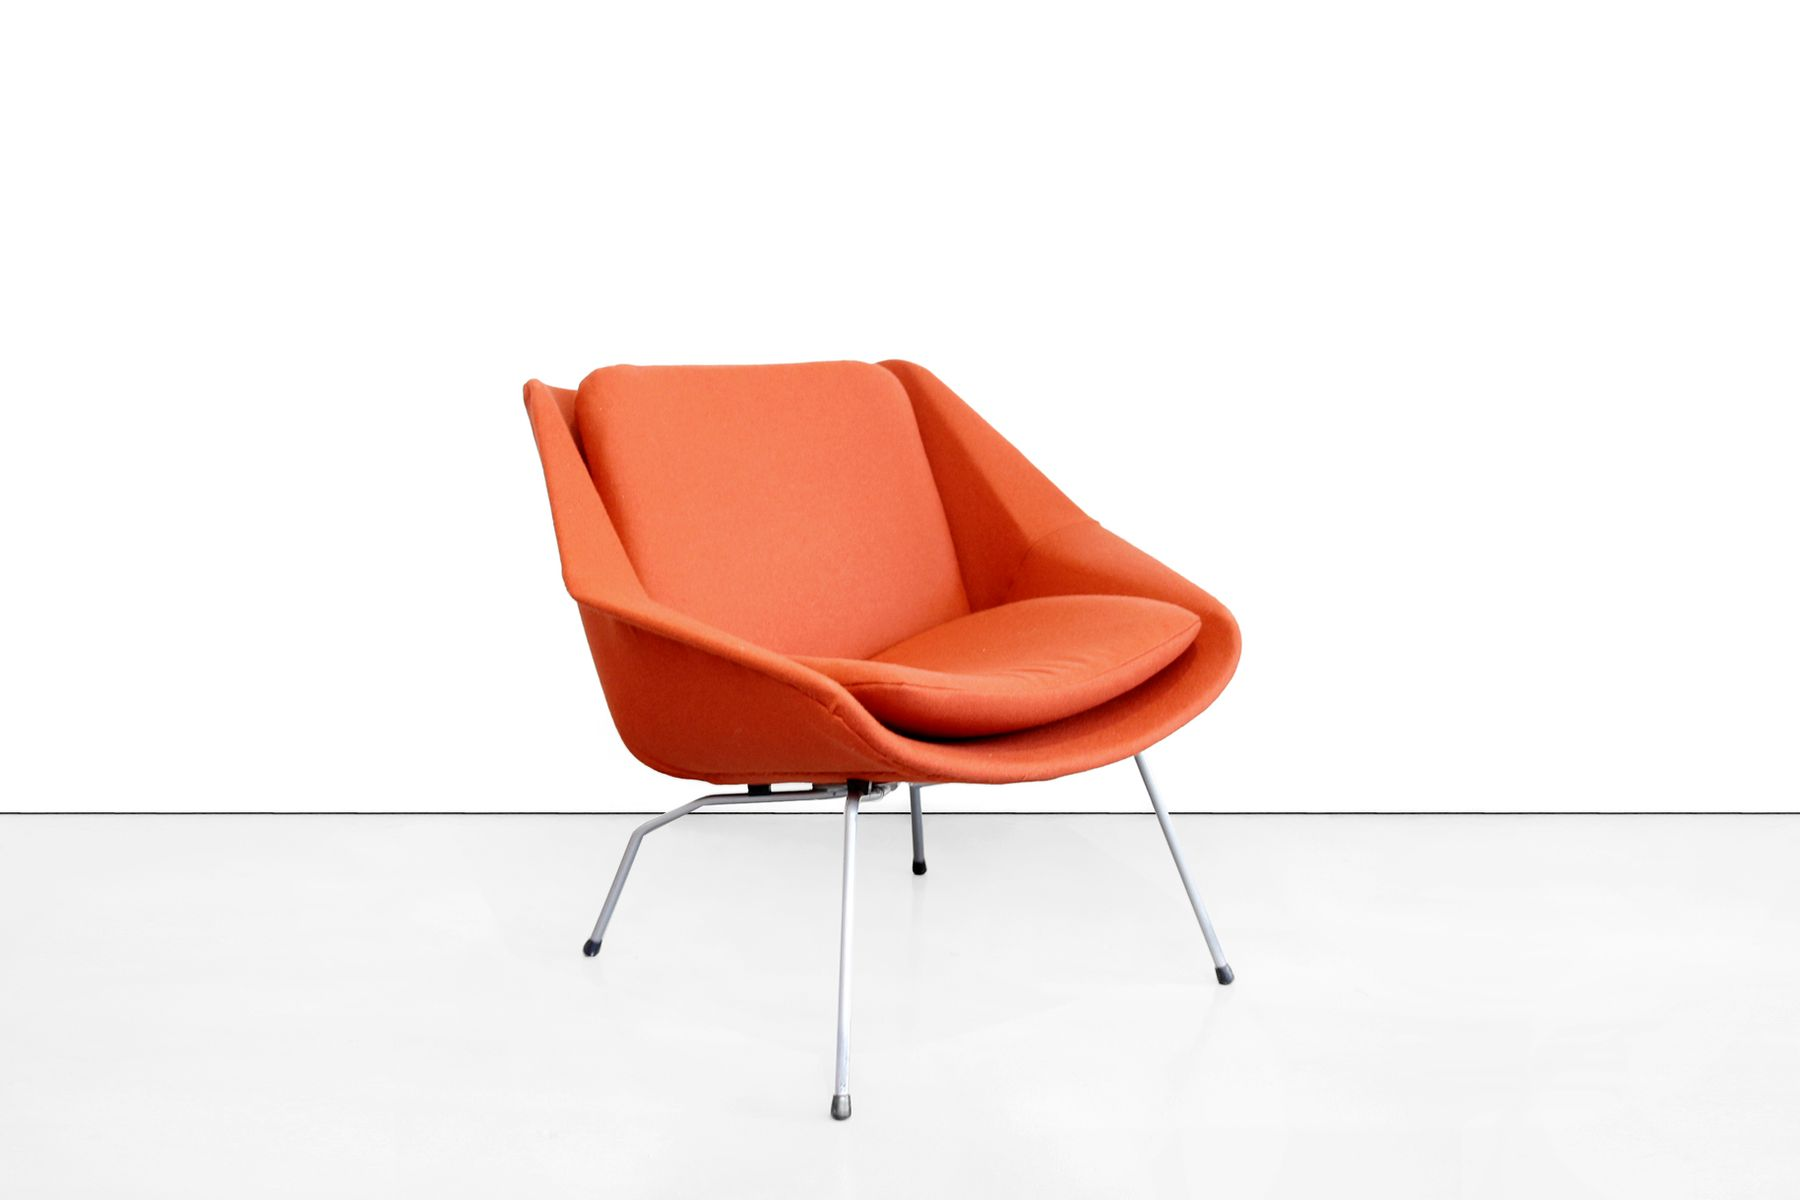 Model fm04 dutch lounge chair by cees braakman for pastoe 1959 for sale at pamono - Originele eames fauteuil ...